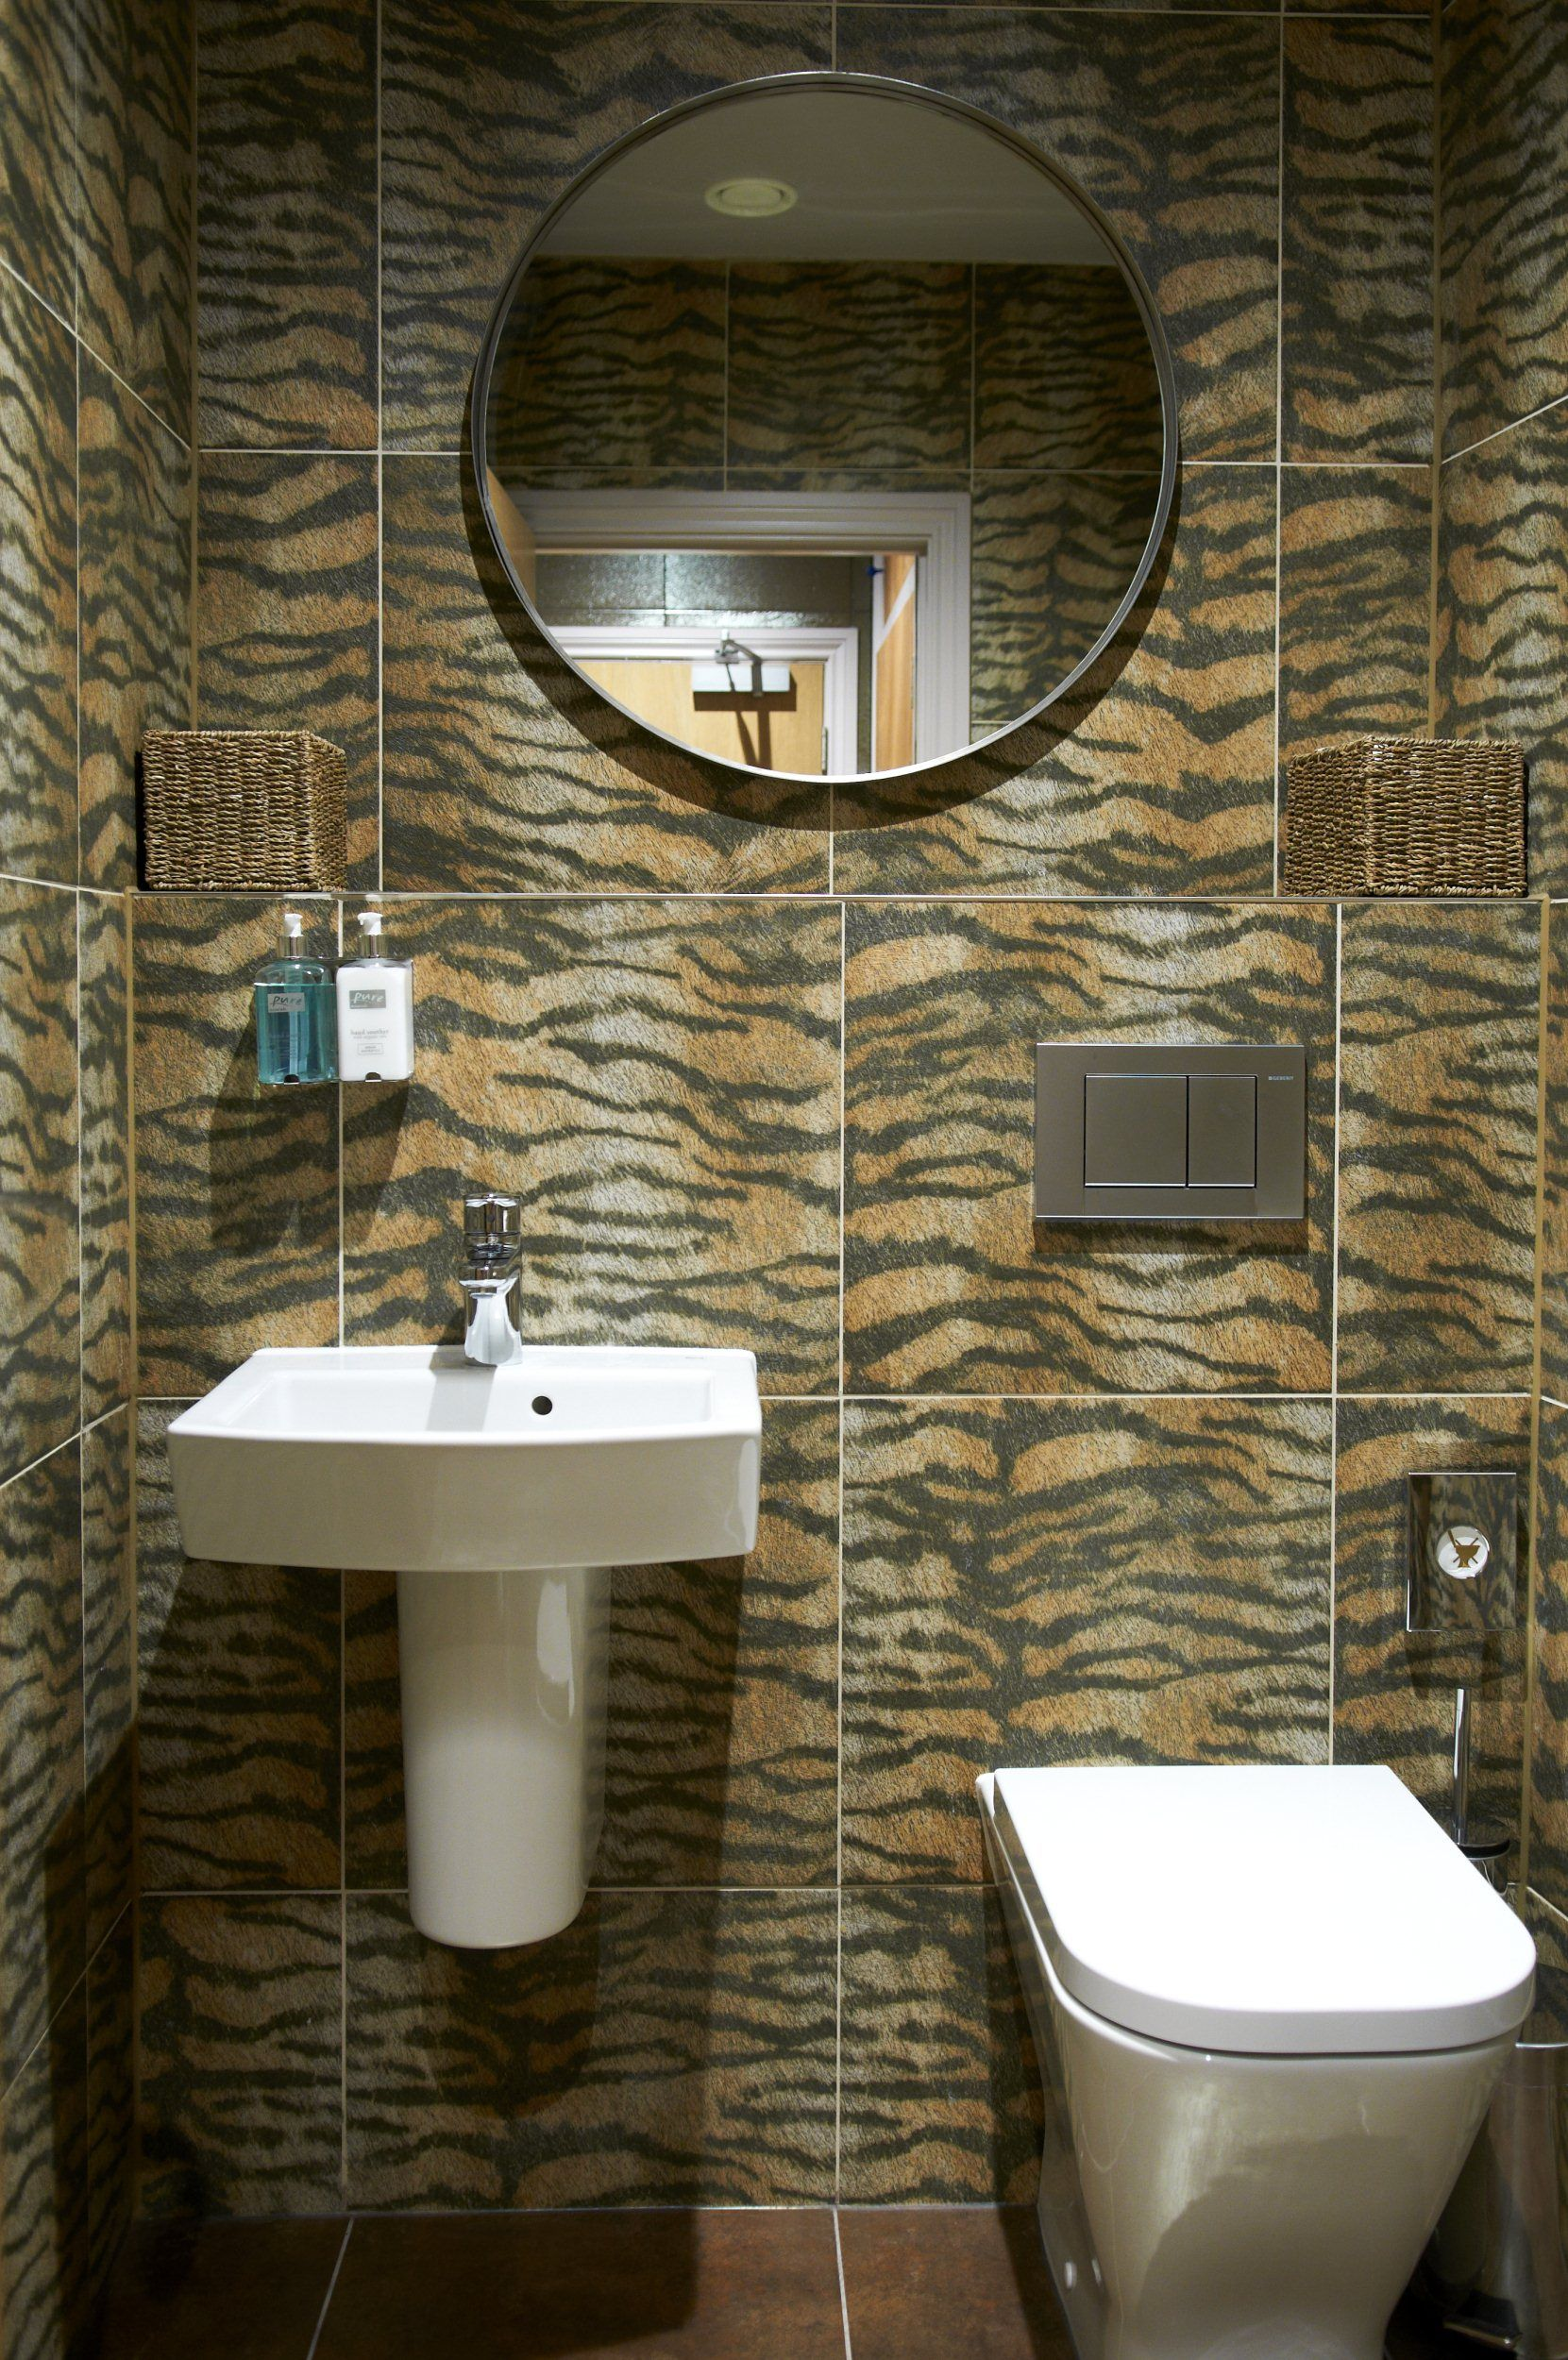 Pin By Original Style On Real Homes In 2019 Tile